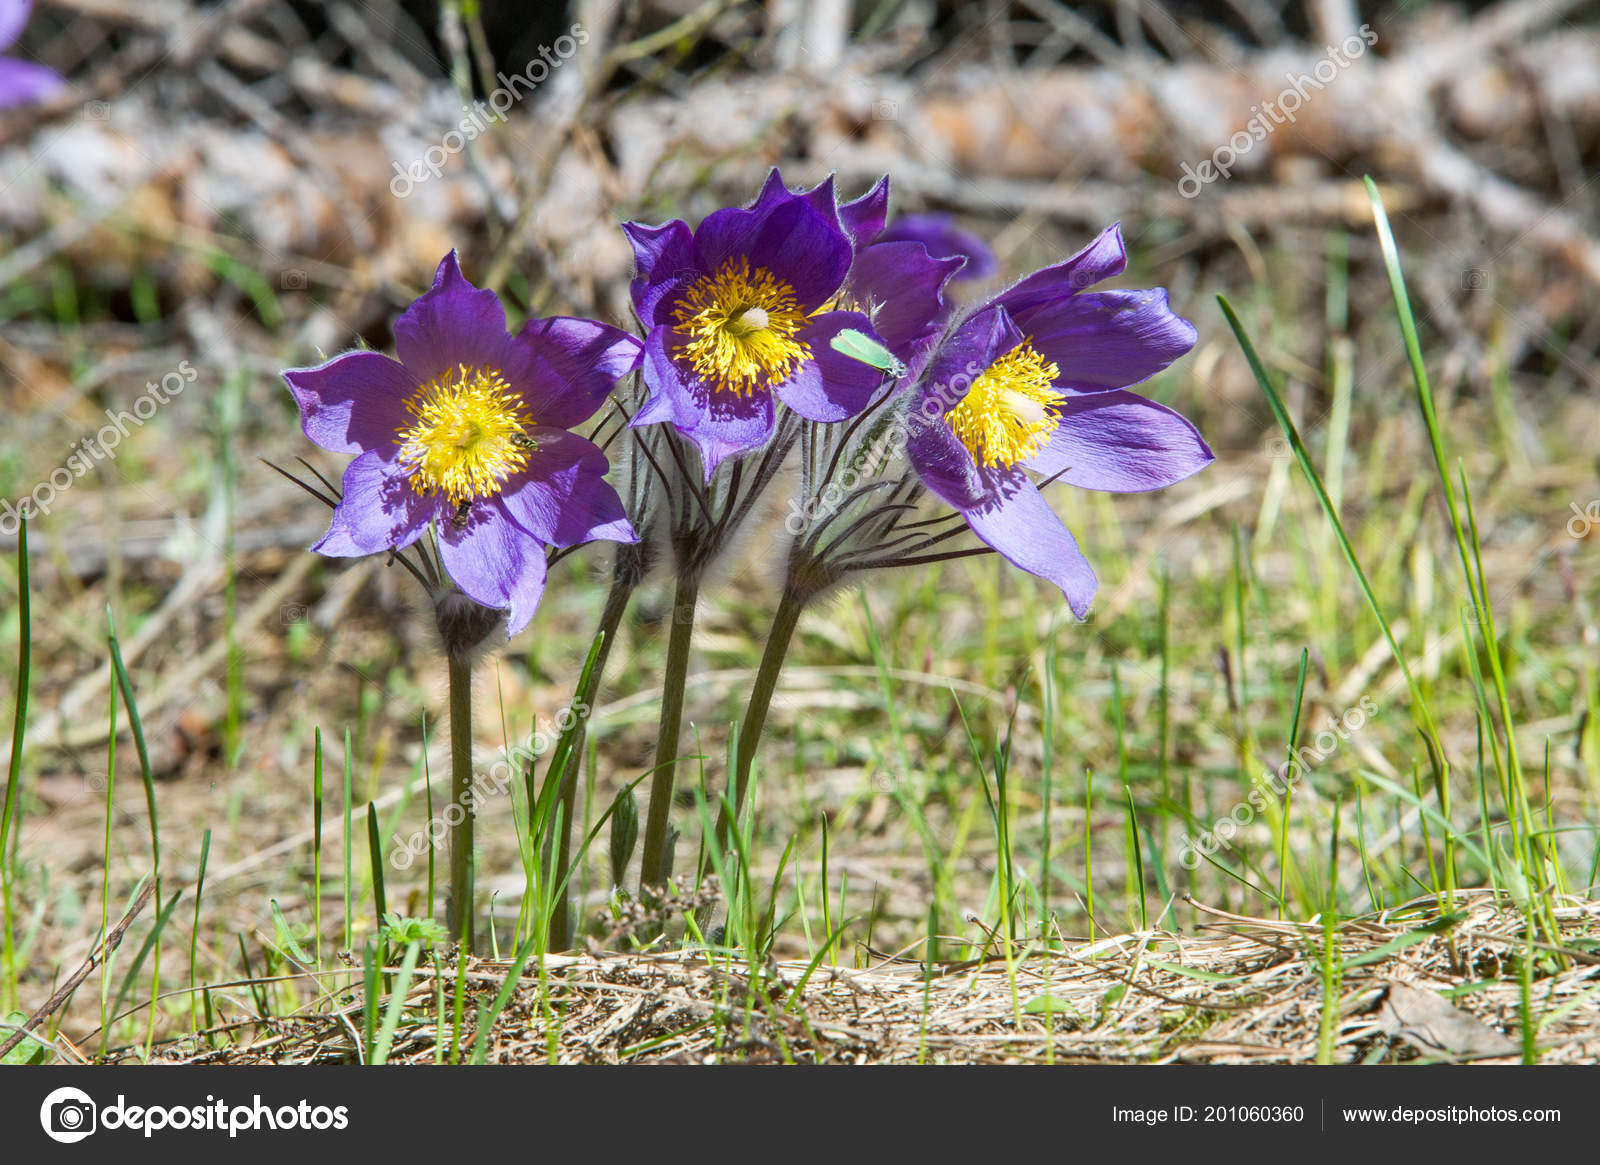 Spring landscape flowers growing wild spring flower pulsatilla spring landscape flowers growing wild spring flower pulsatilla common names stock photo mightylinksfo